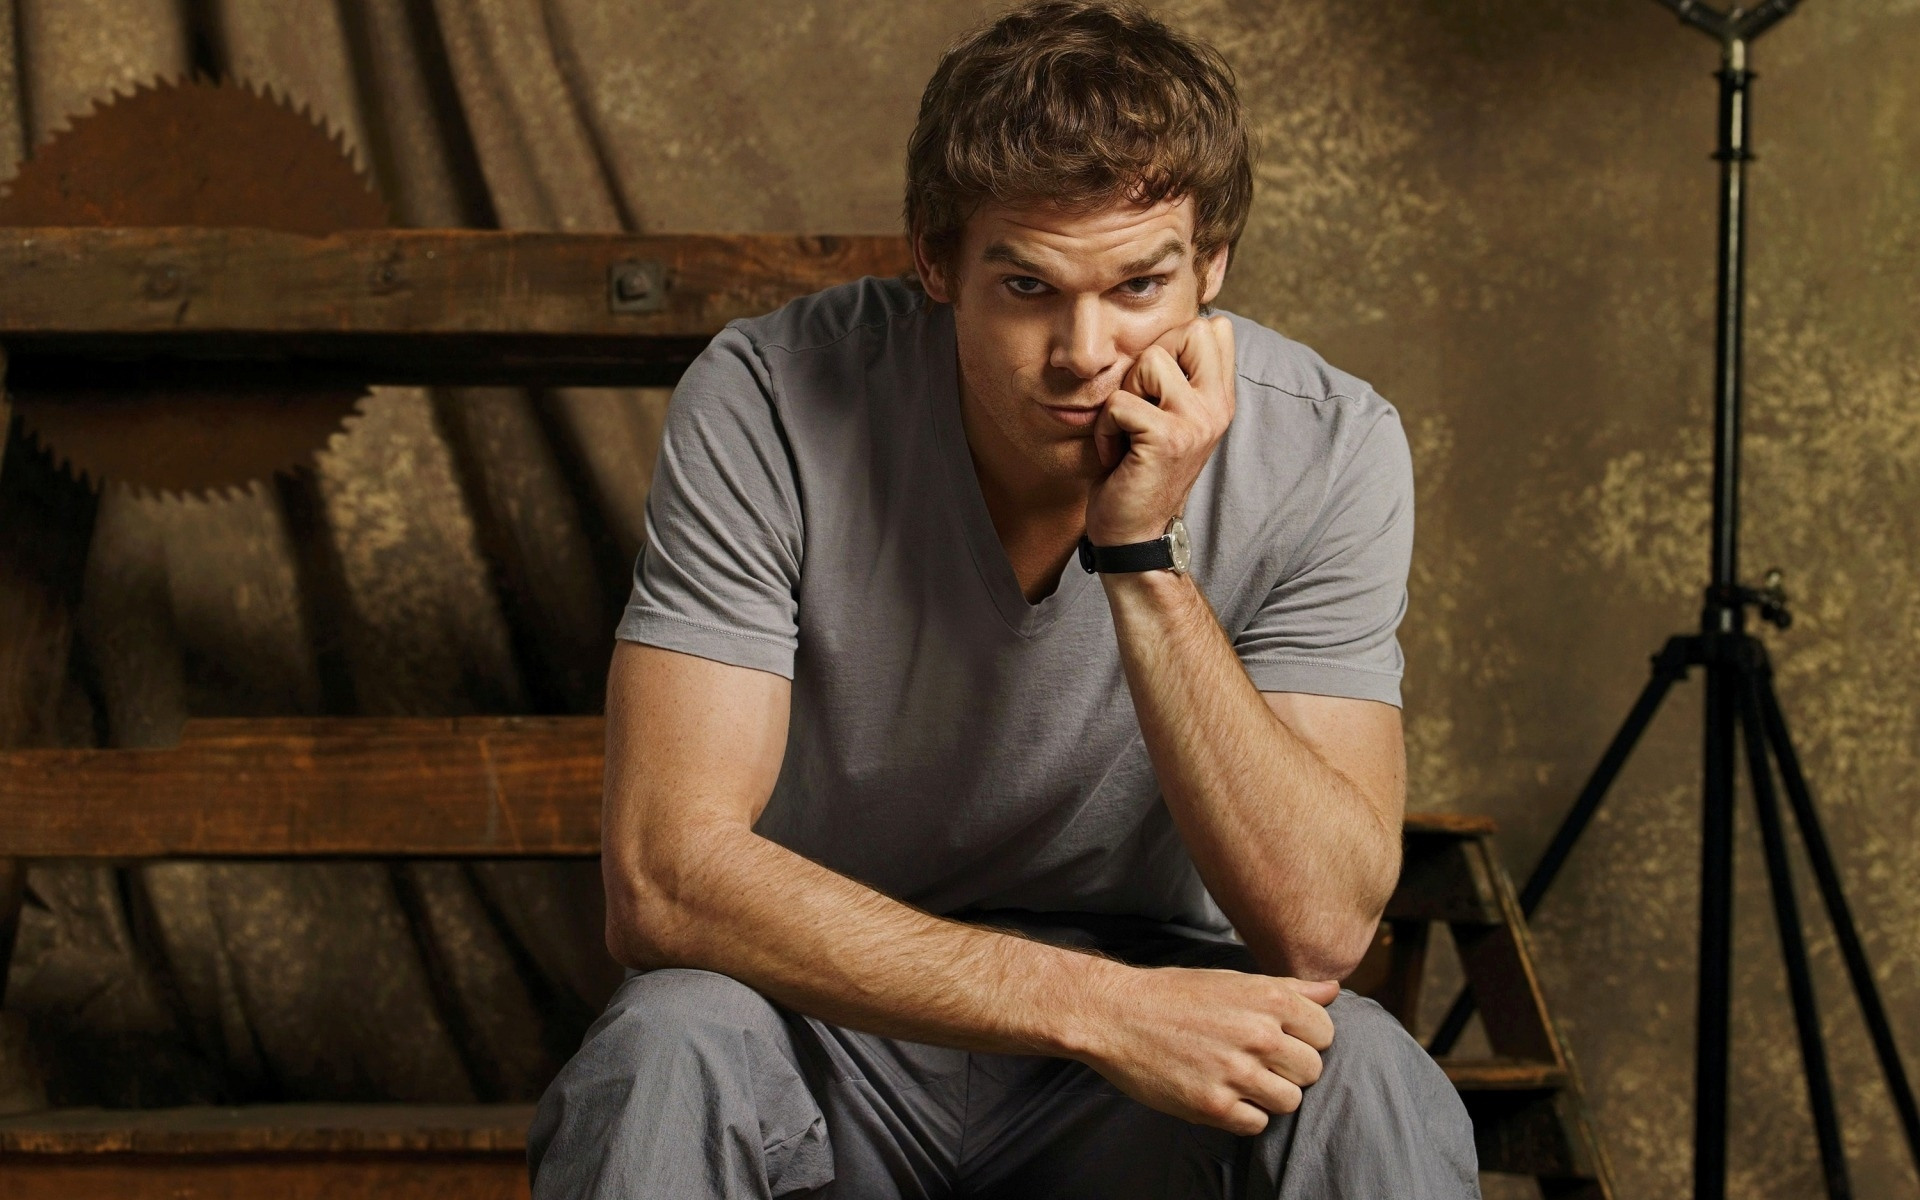 dexter, michael c. hall, взгляд, сериал